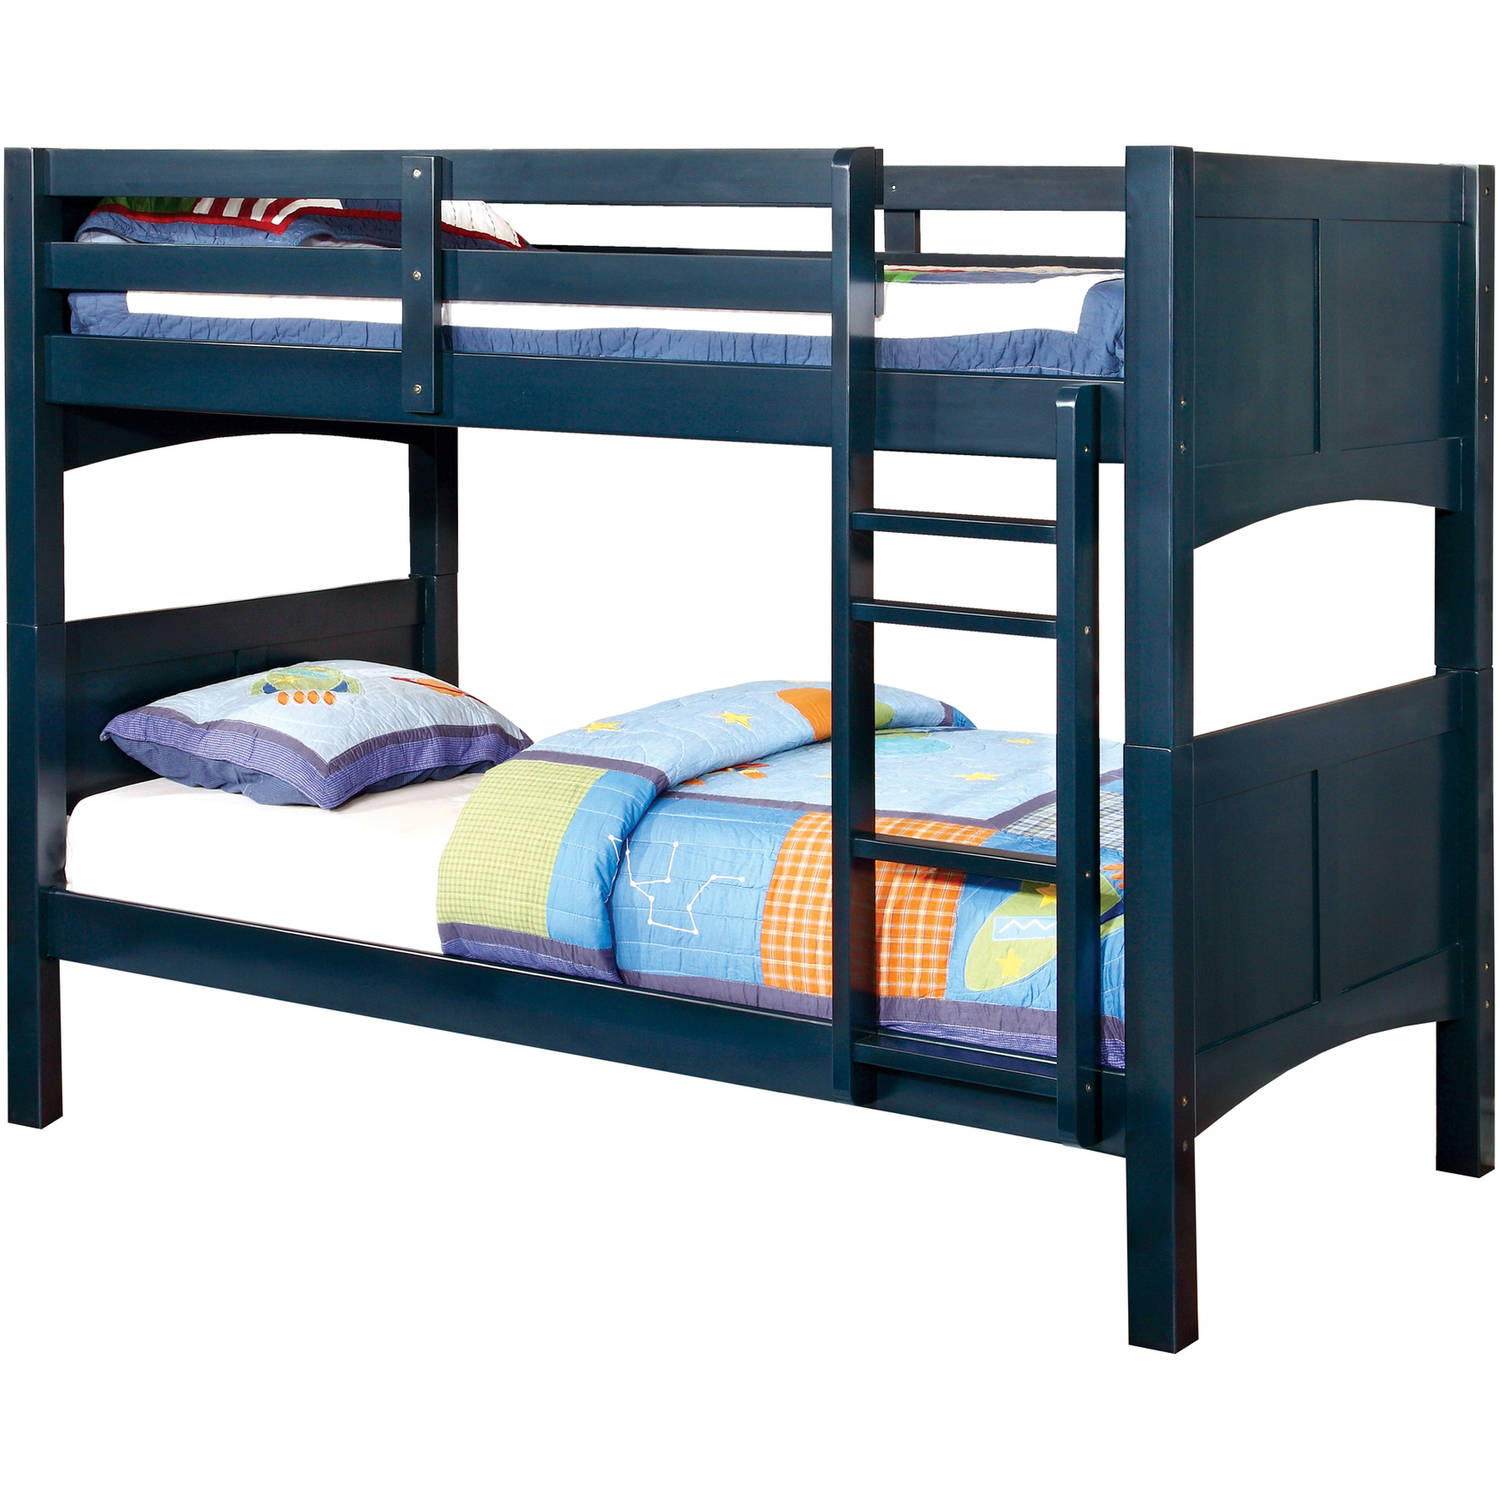 Furniture of America Melissa Twin Over Twin Youth Bunk Bed, Multiple Colors Available